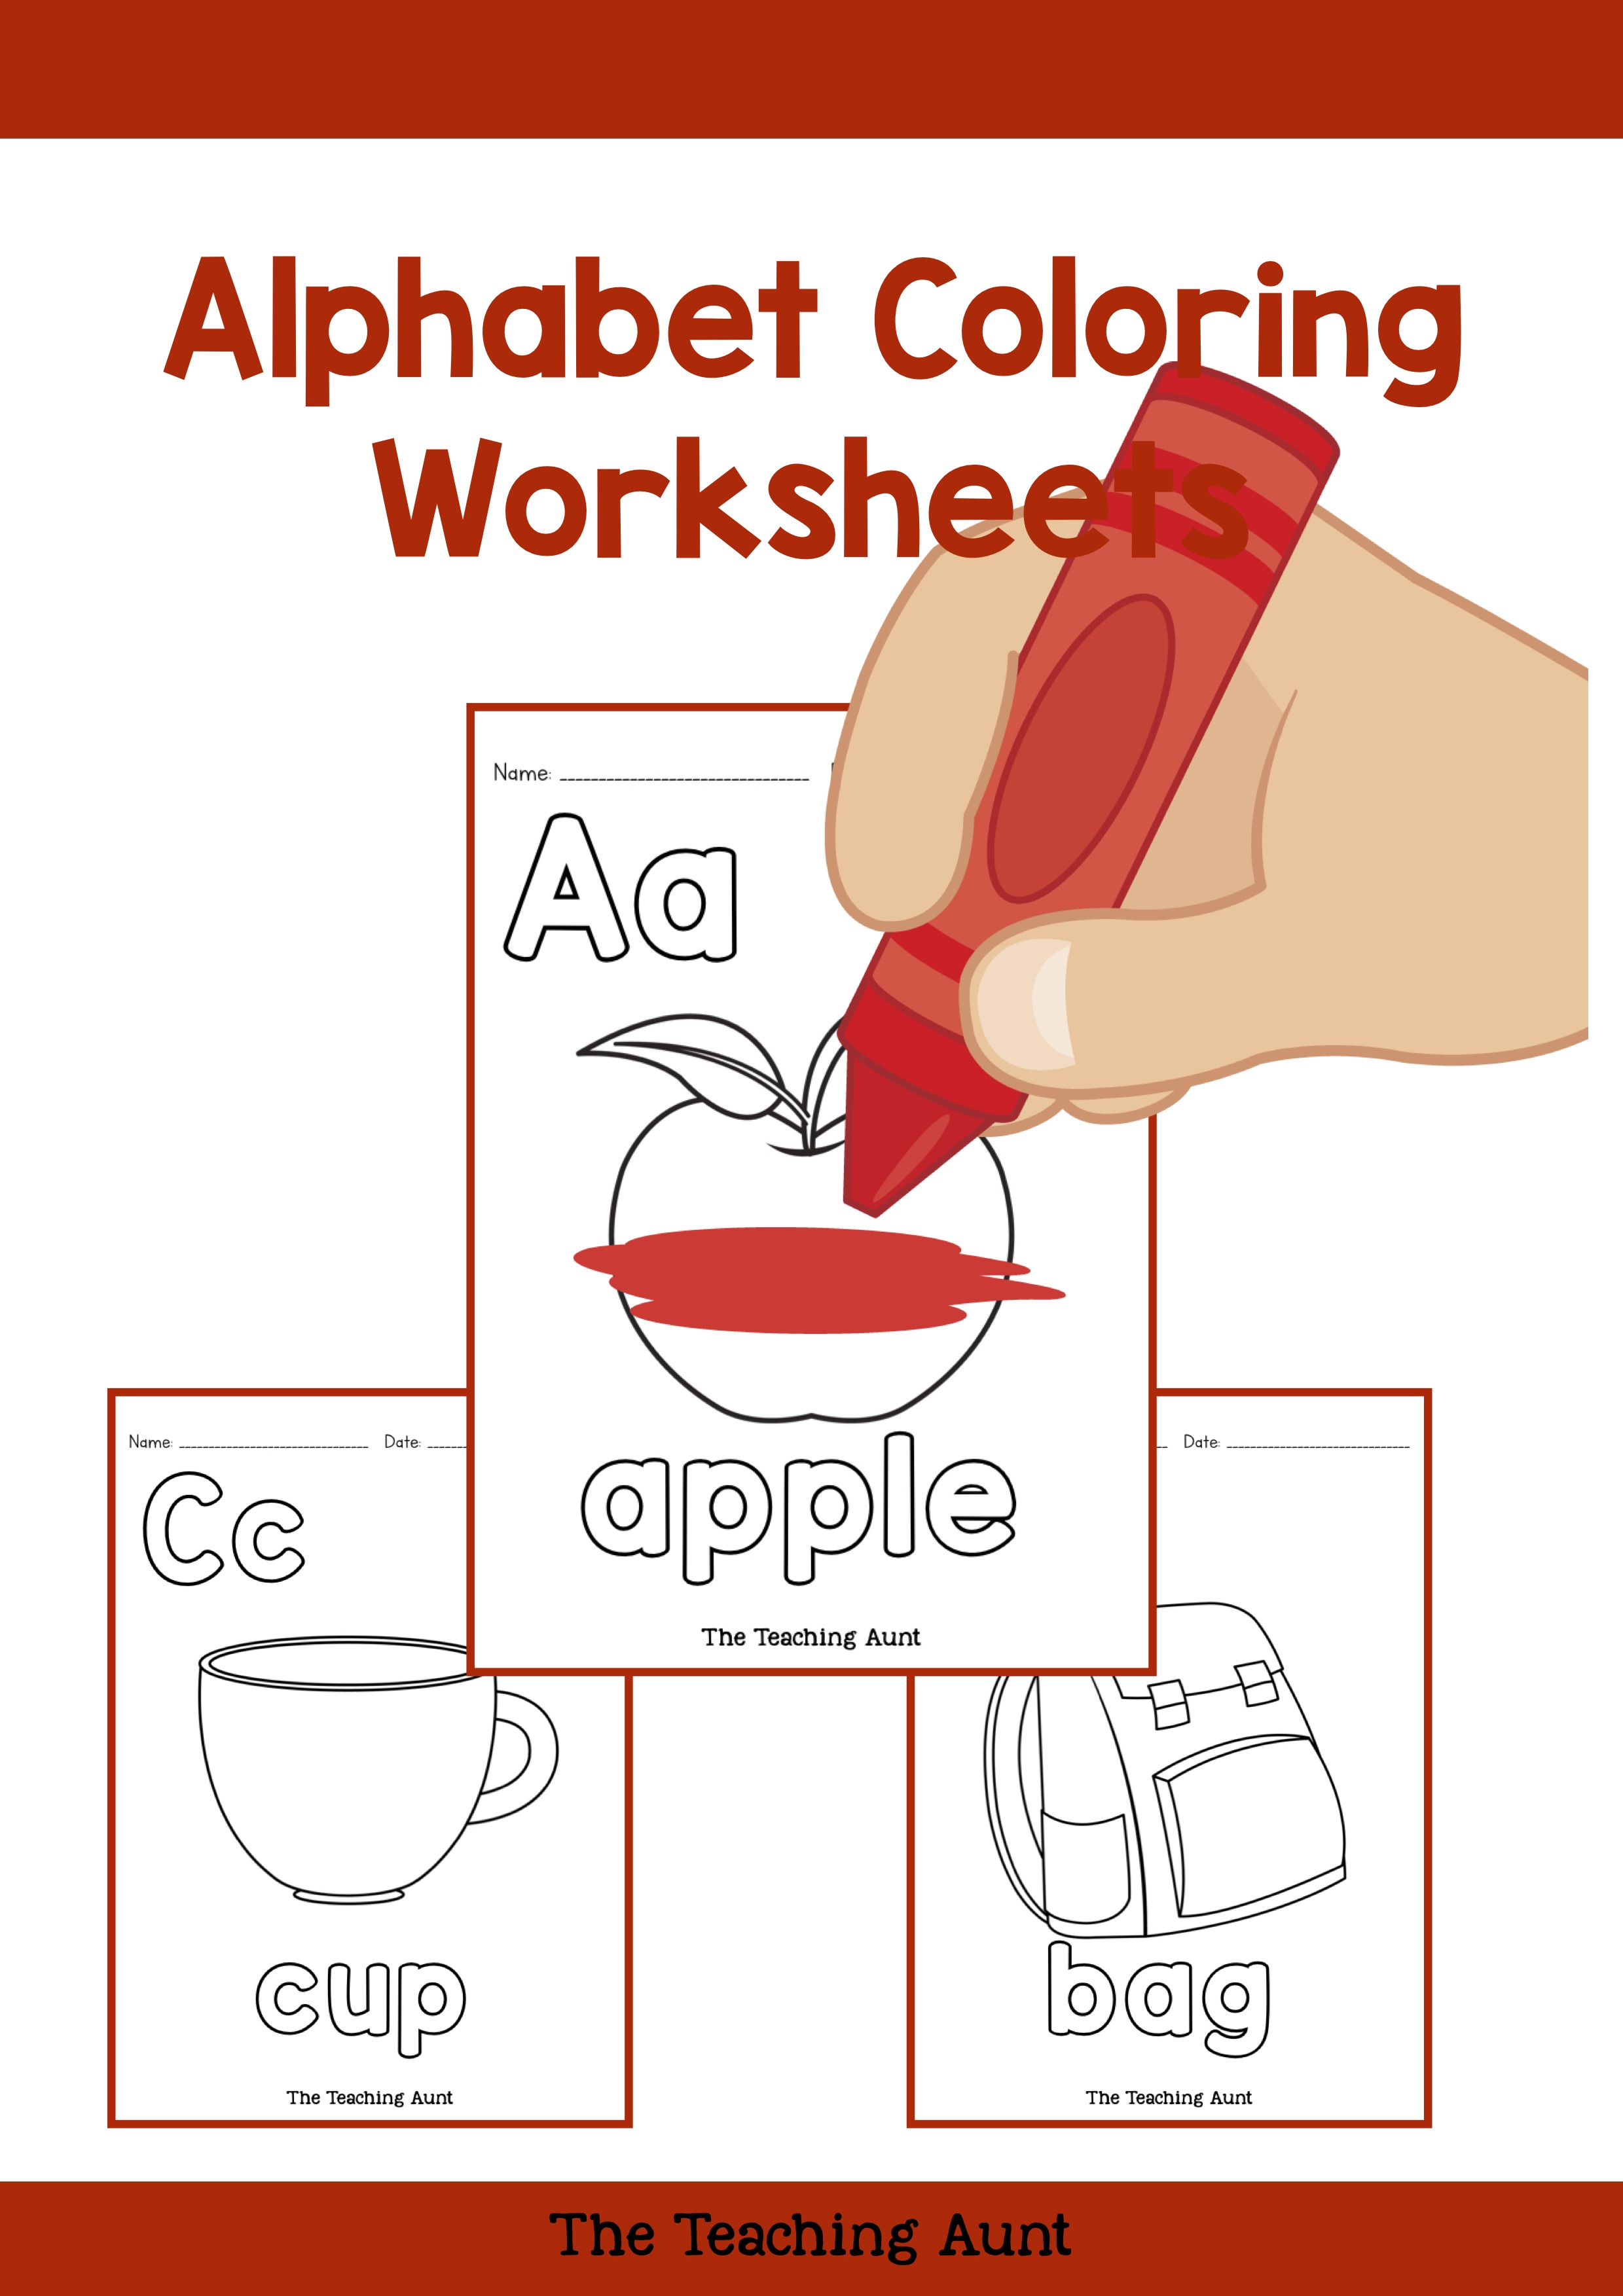 - Alphabet Coloring Pages Free Printable - The Teaching Aunt